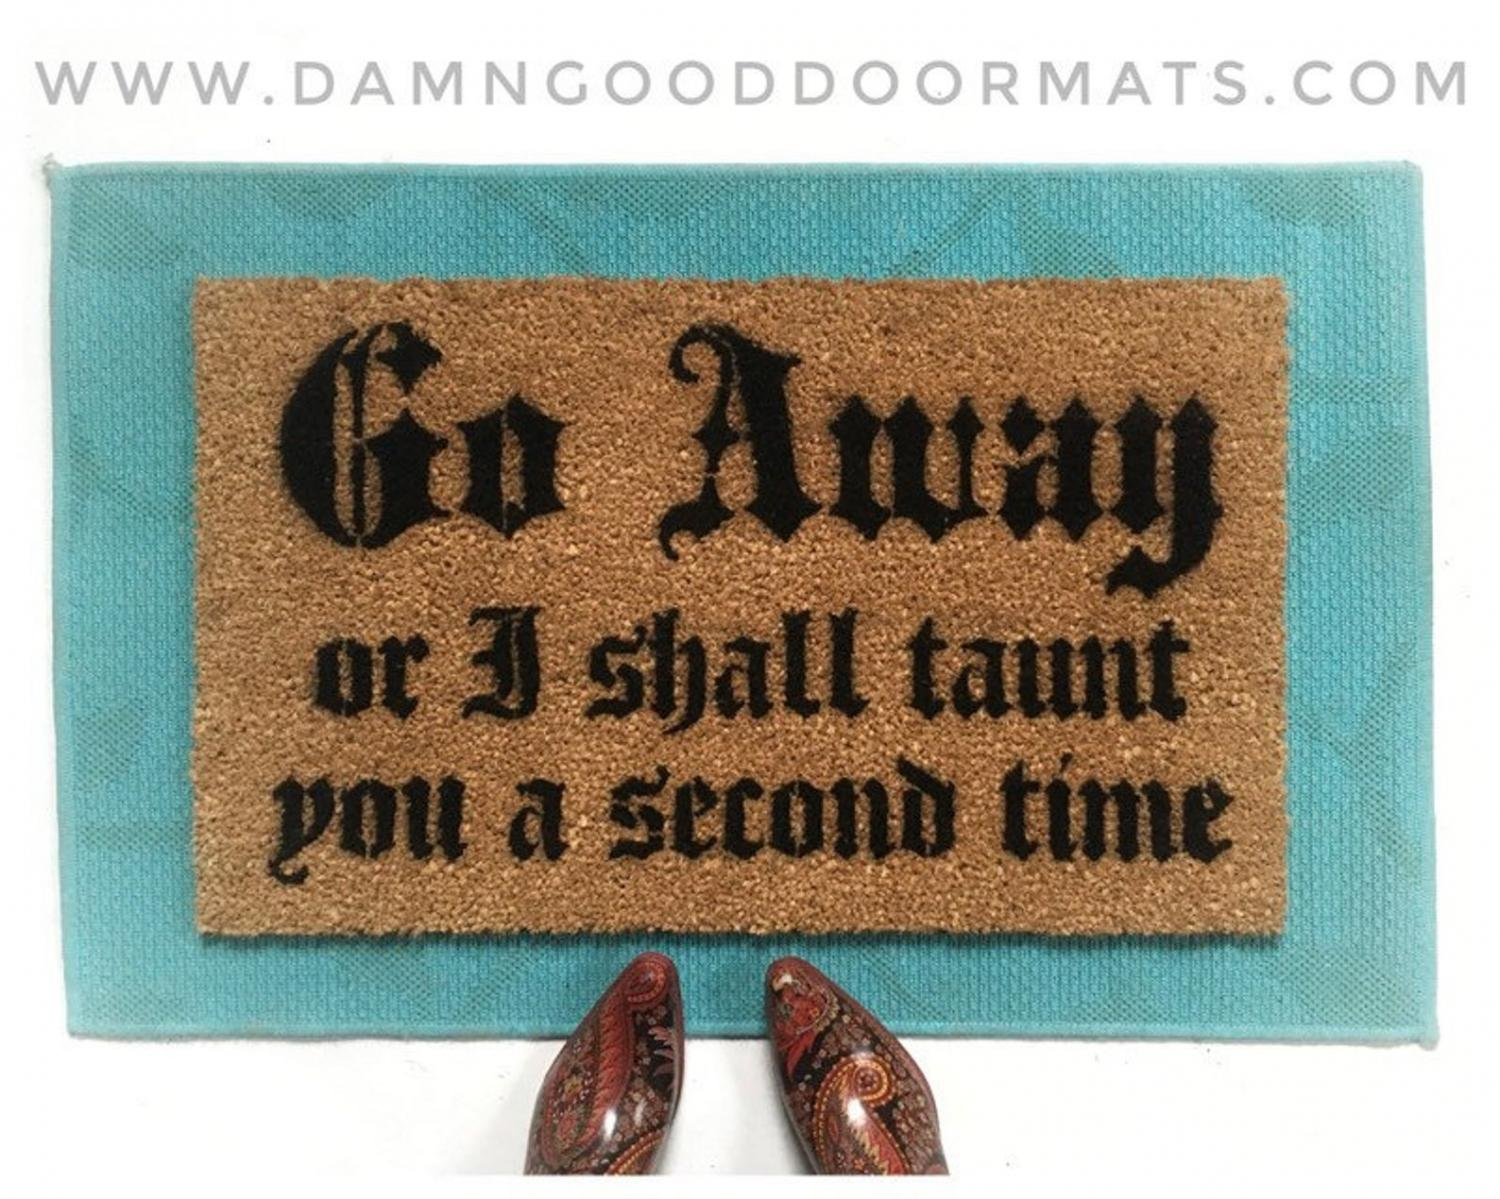 Monty Python Doormat - Go away or i shall taunt you a second time funny doormat